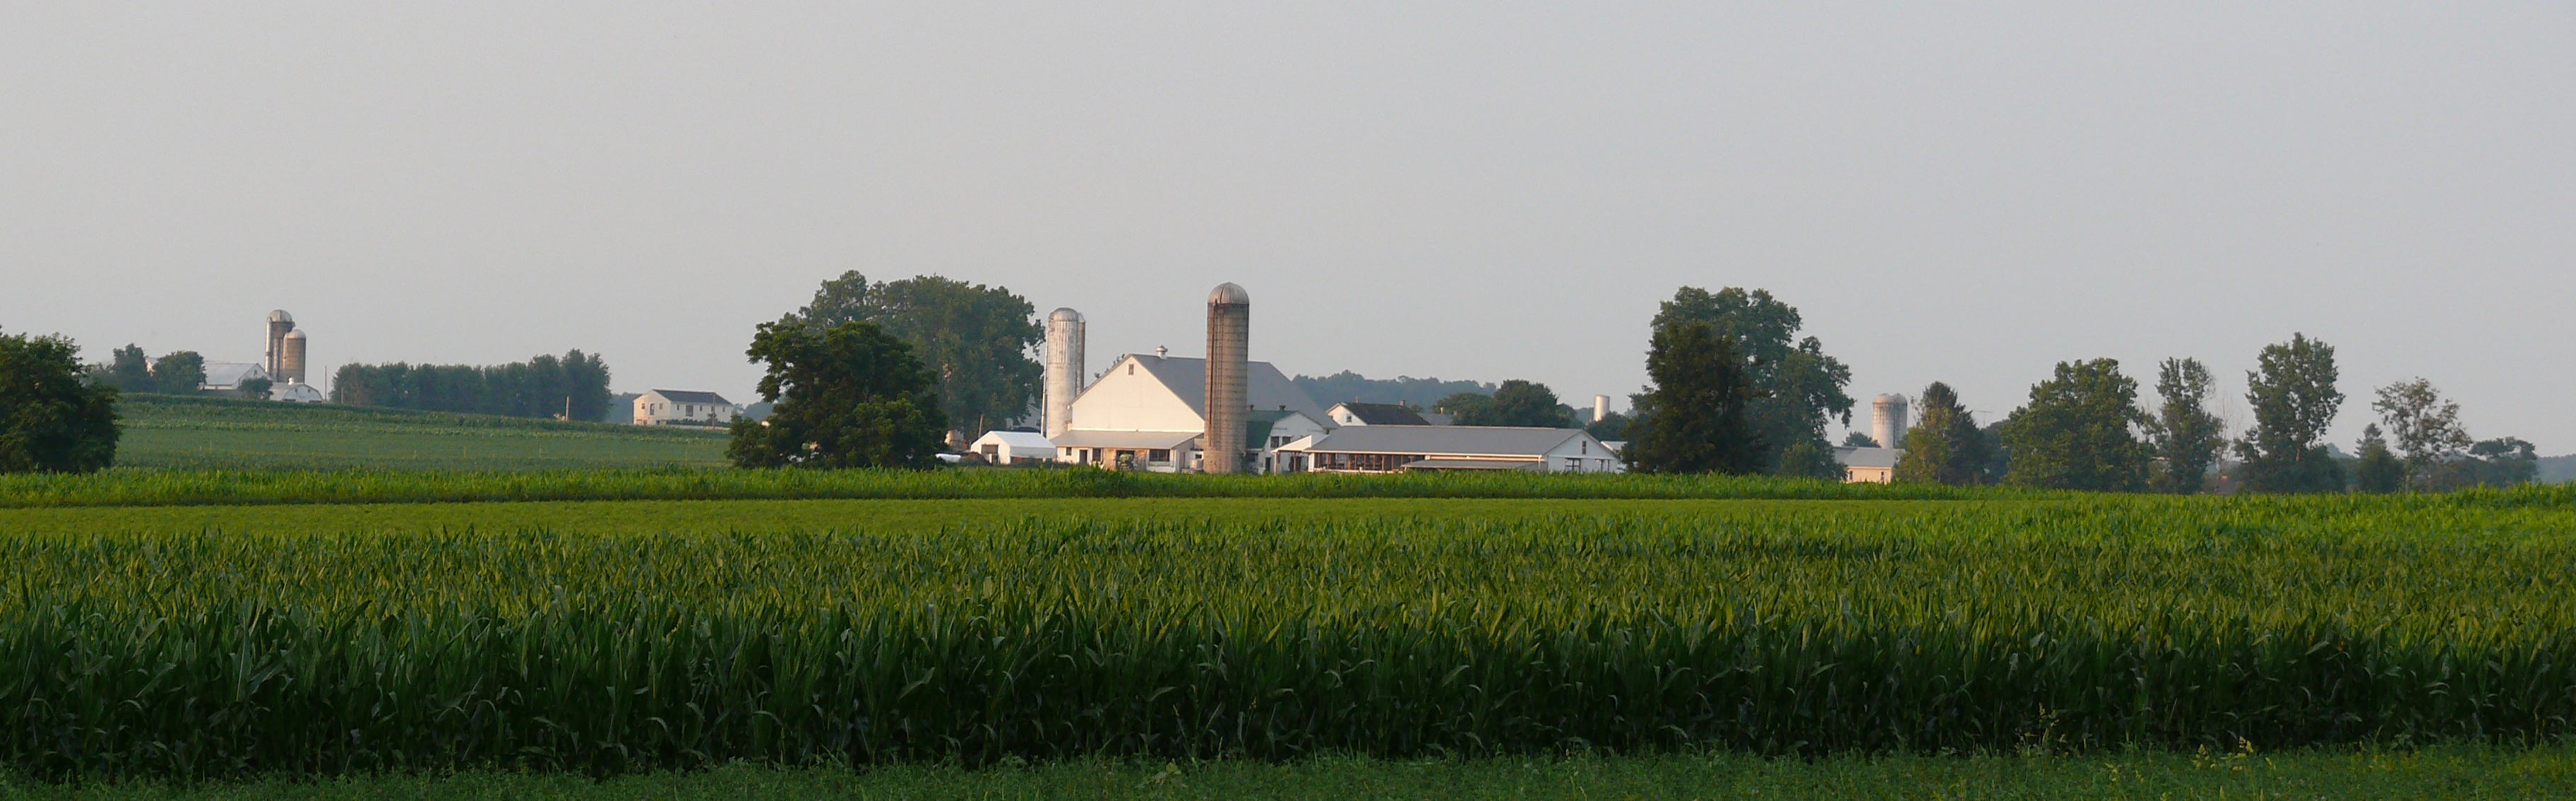 Amish dairy farms 2